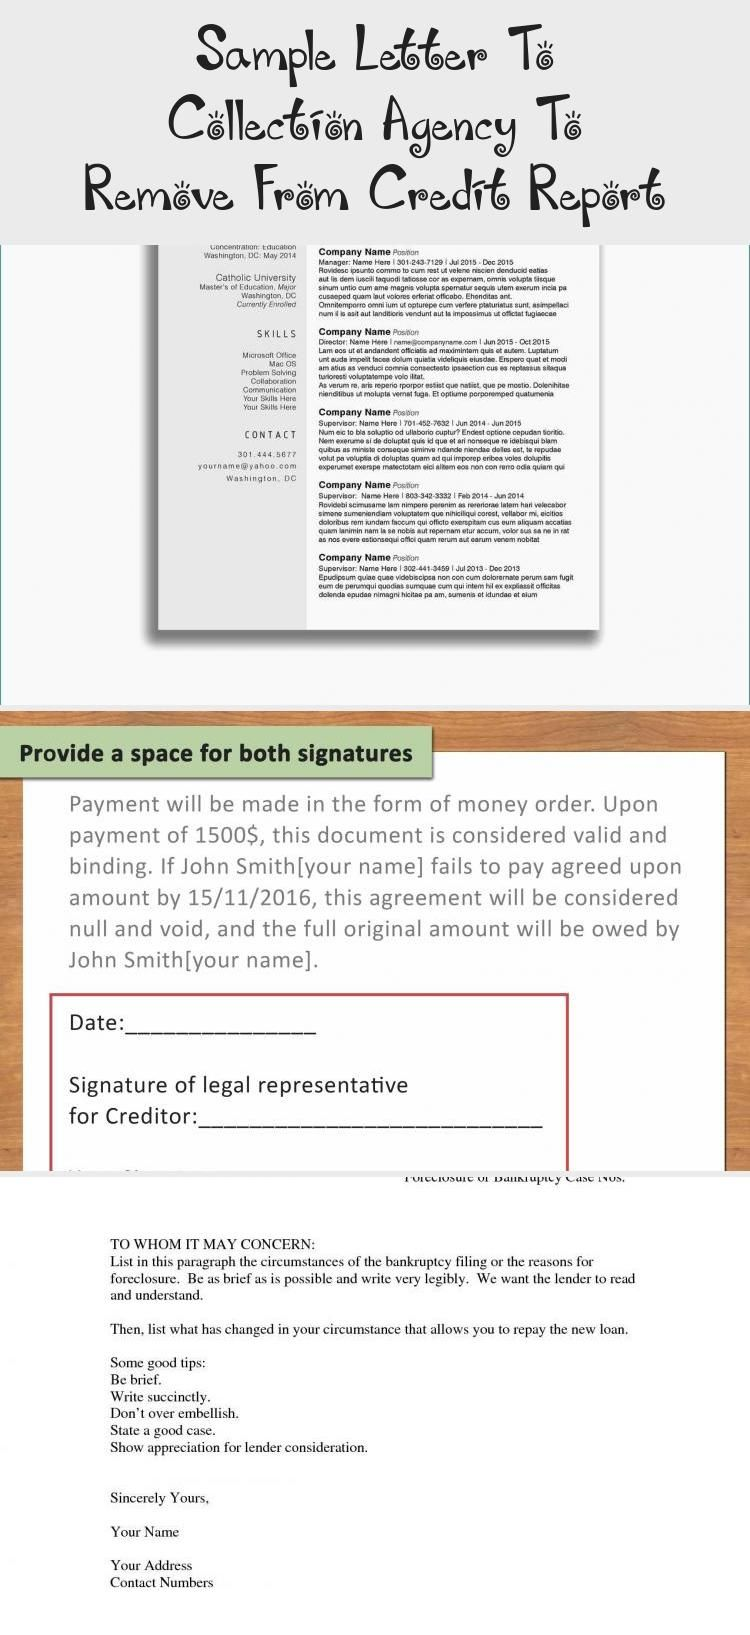 13++ Goodwill letter credit repair ideas in 2021